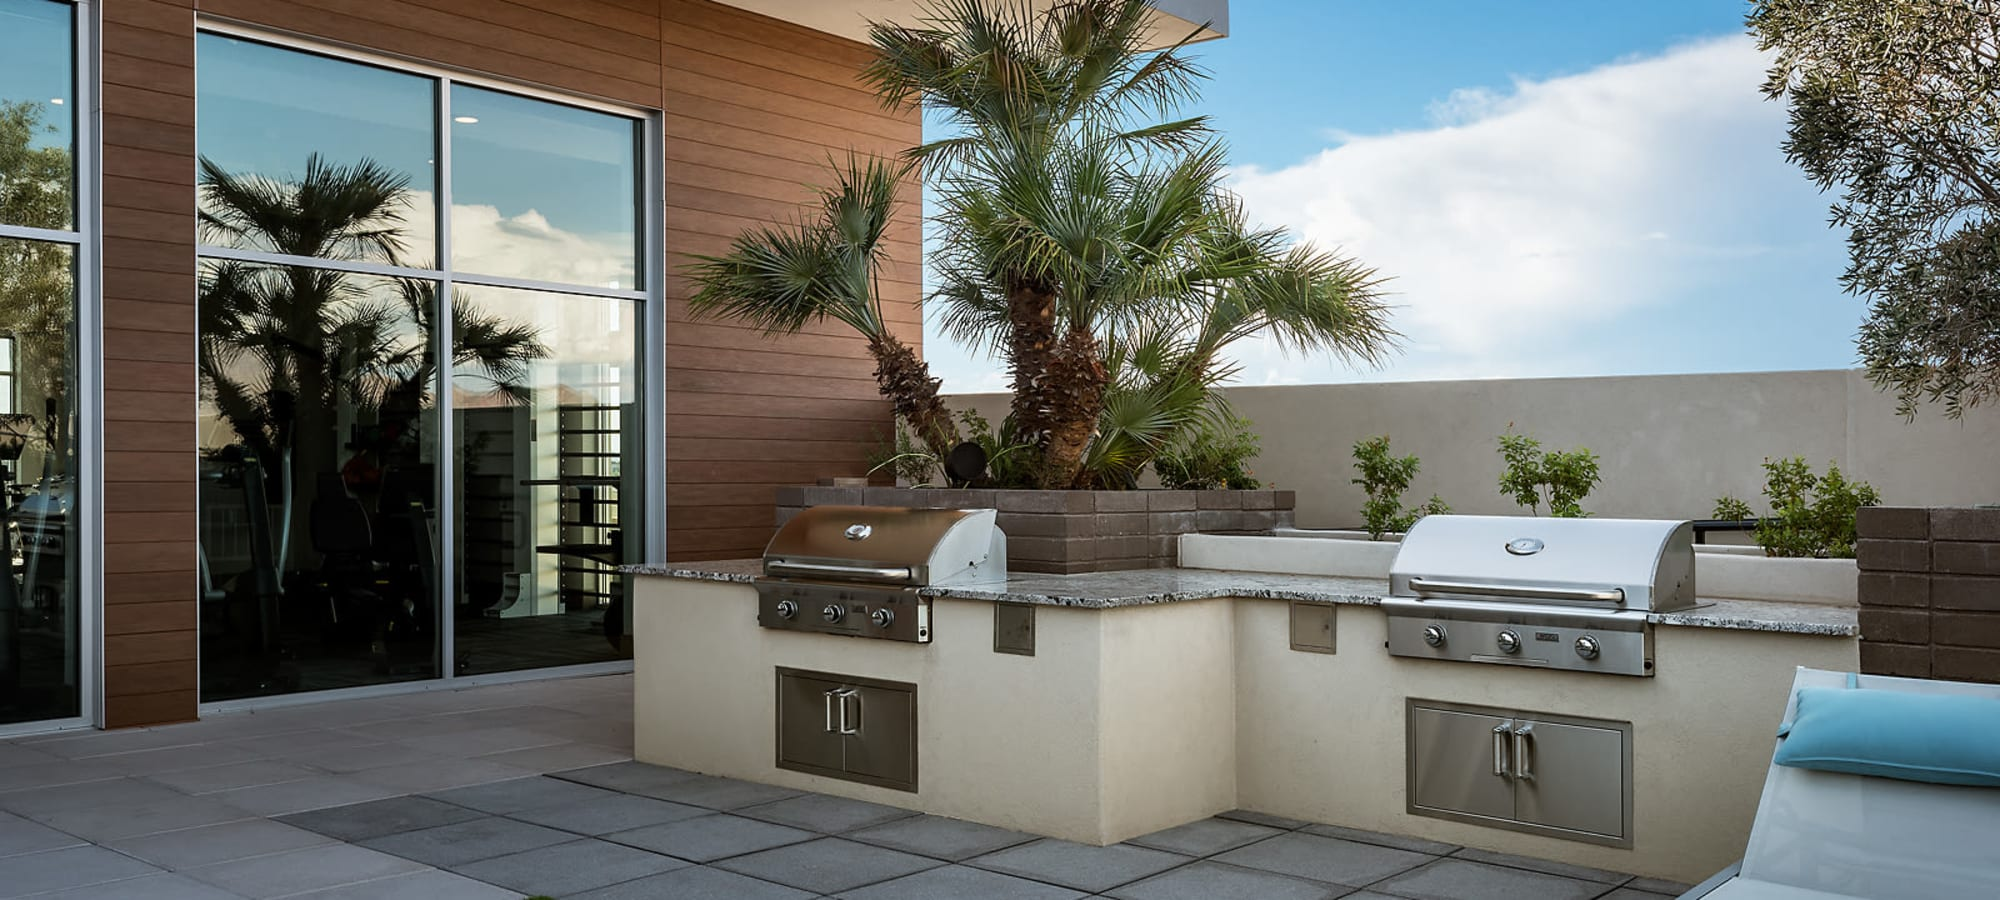 Outdoor grilling area at The Halsten at Chauncey Lane in Scottsdale, Arizona